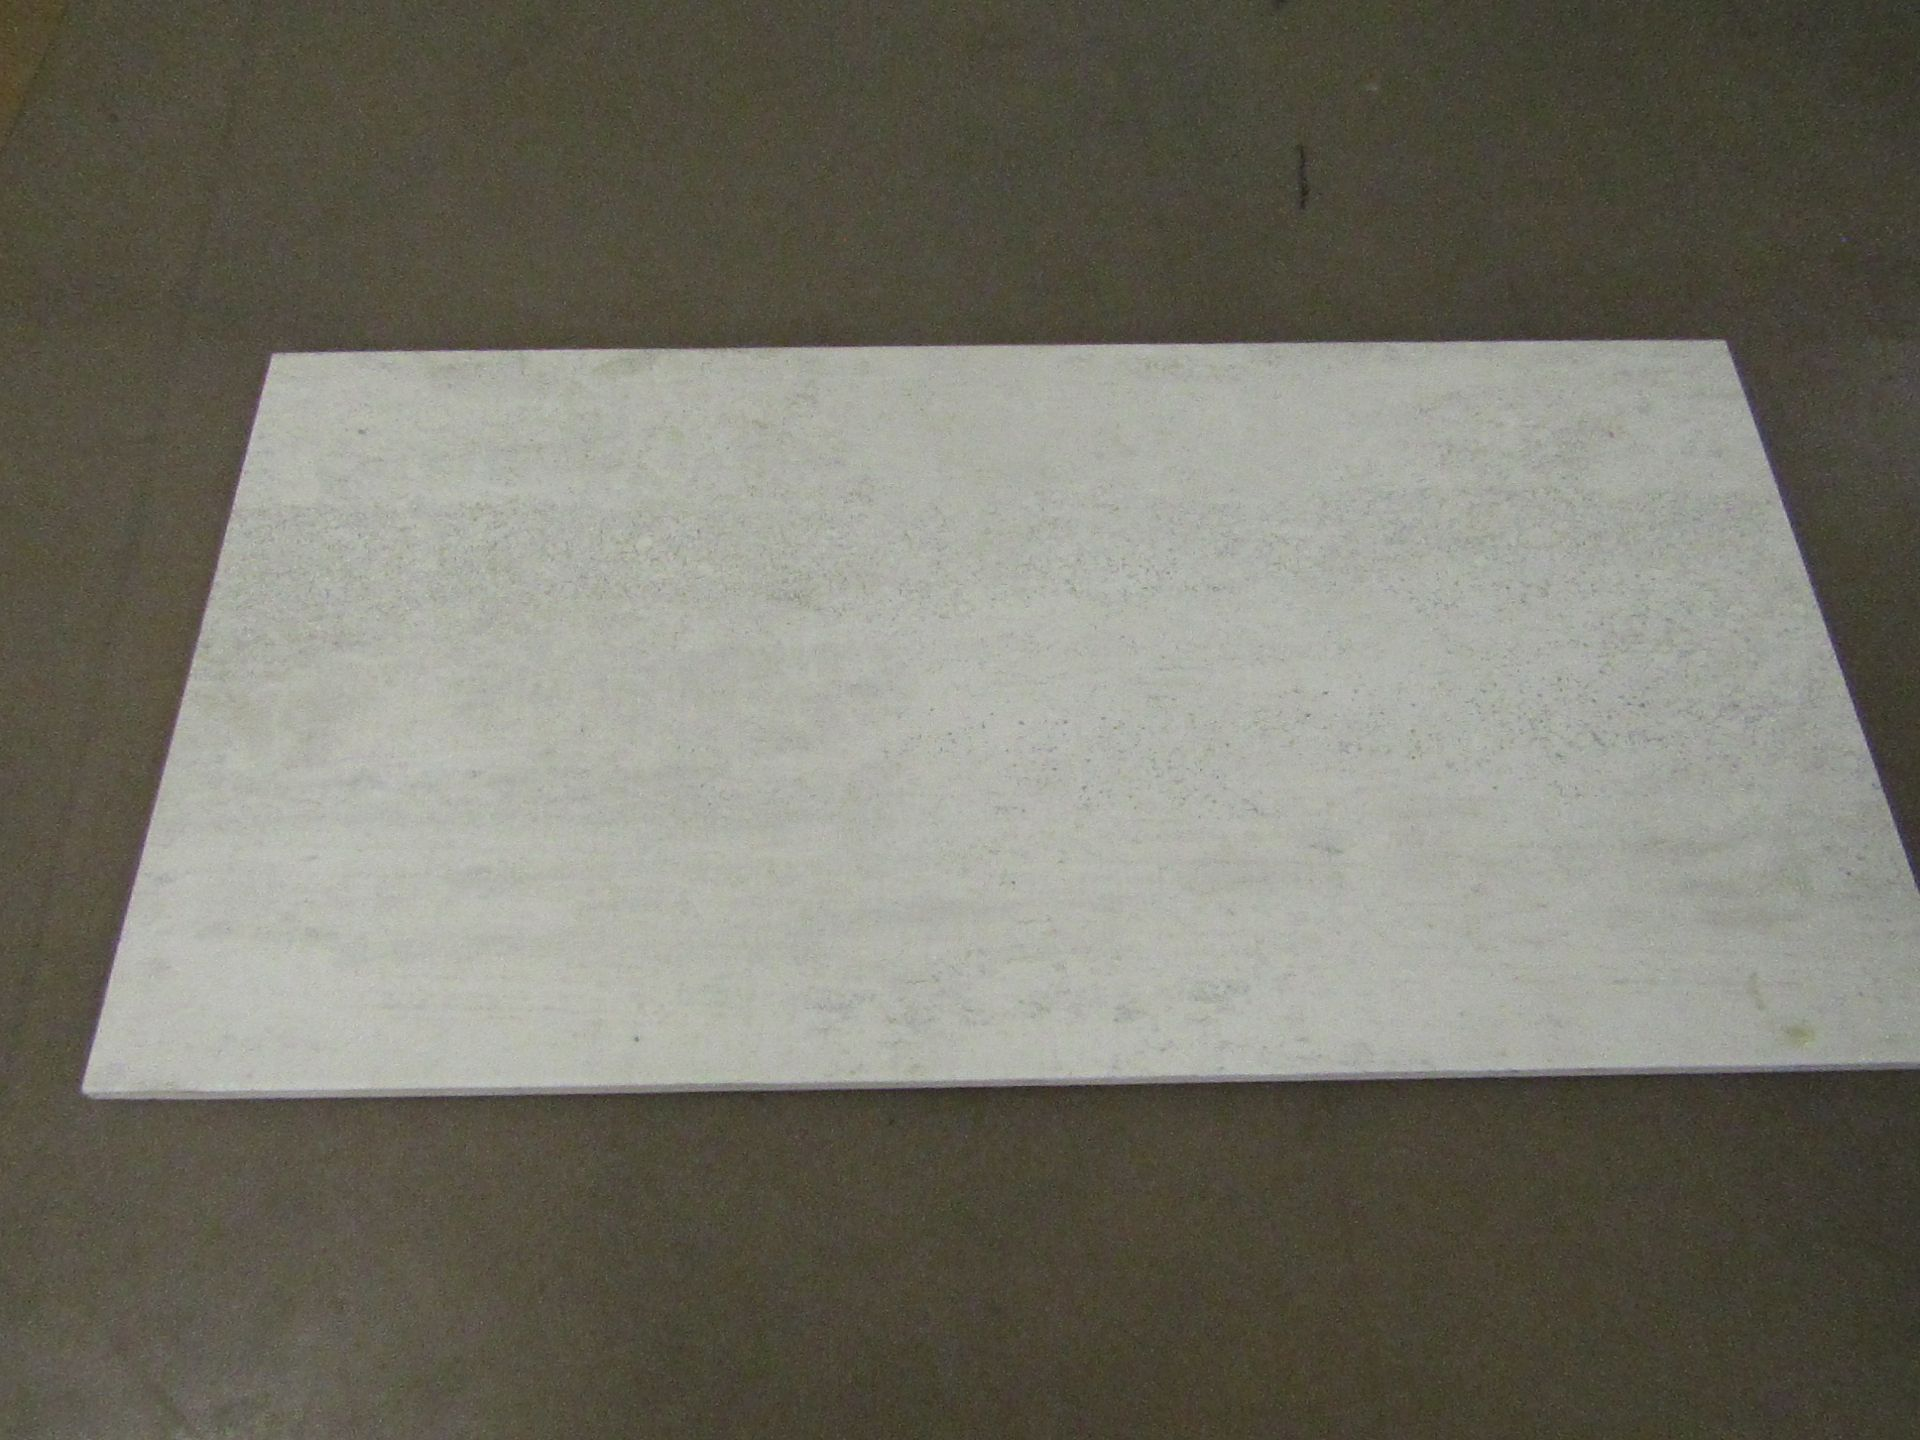 Pallet of 40x Packs of 5 Ashlar Weathered White Tex tured 300x600 wall and Floor Tiles By